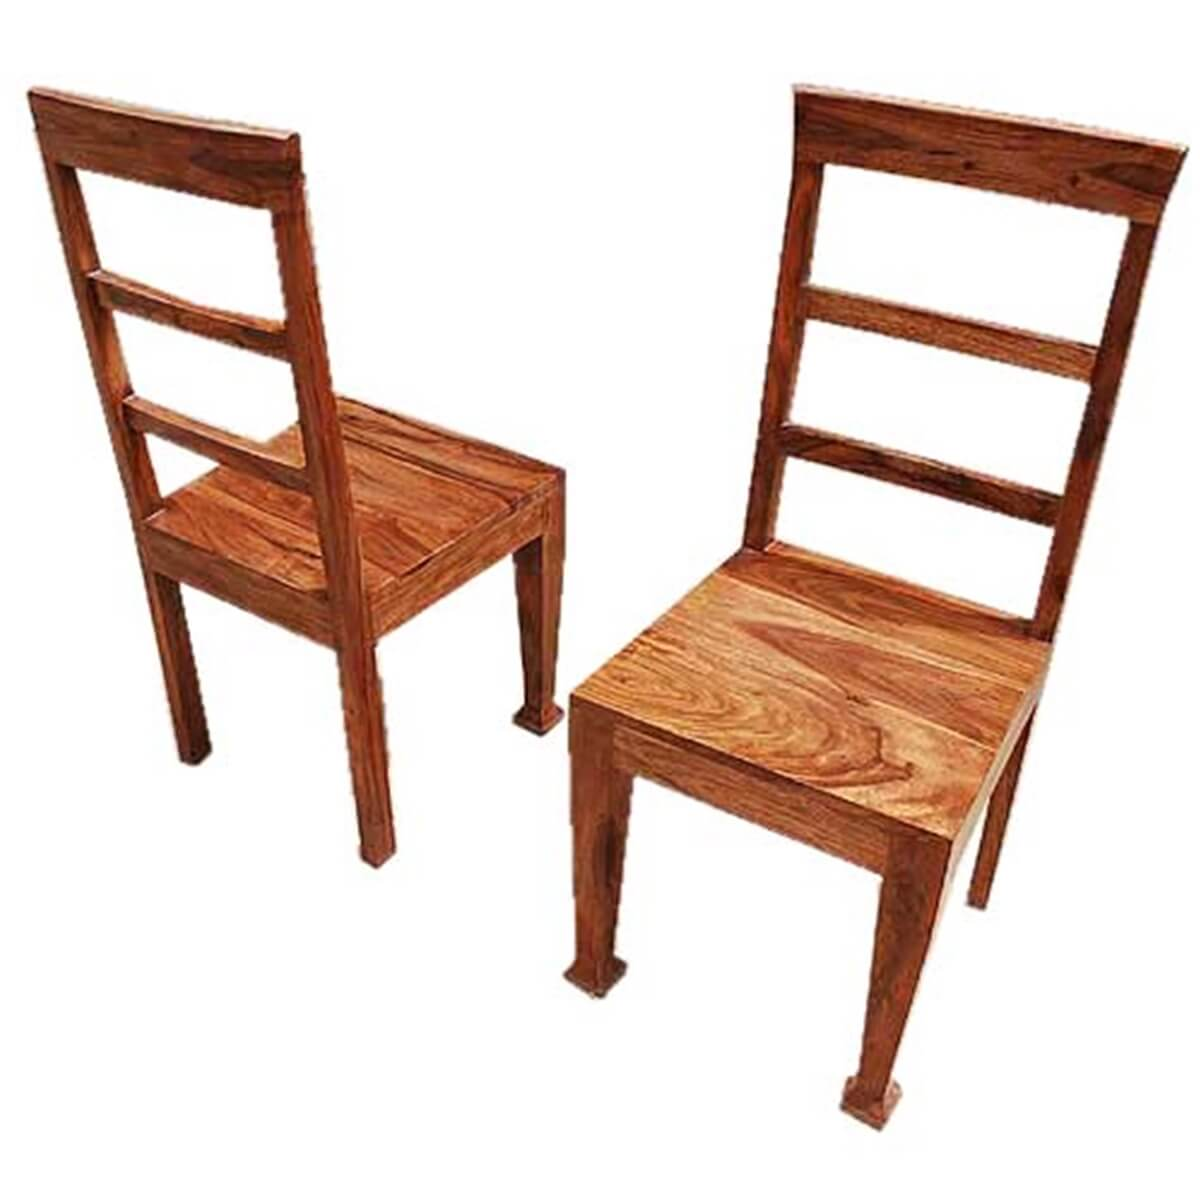 Rustic Wood Chairs Rustic Furniture Solid Wood Dining Table And Chair Set